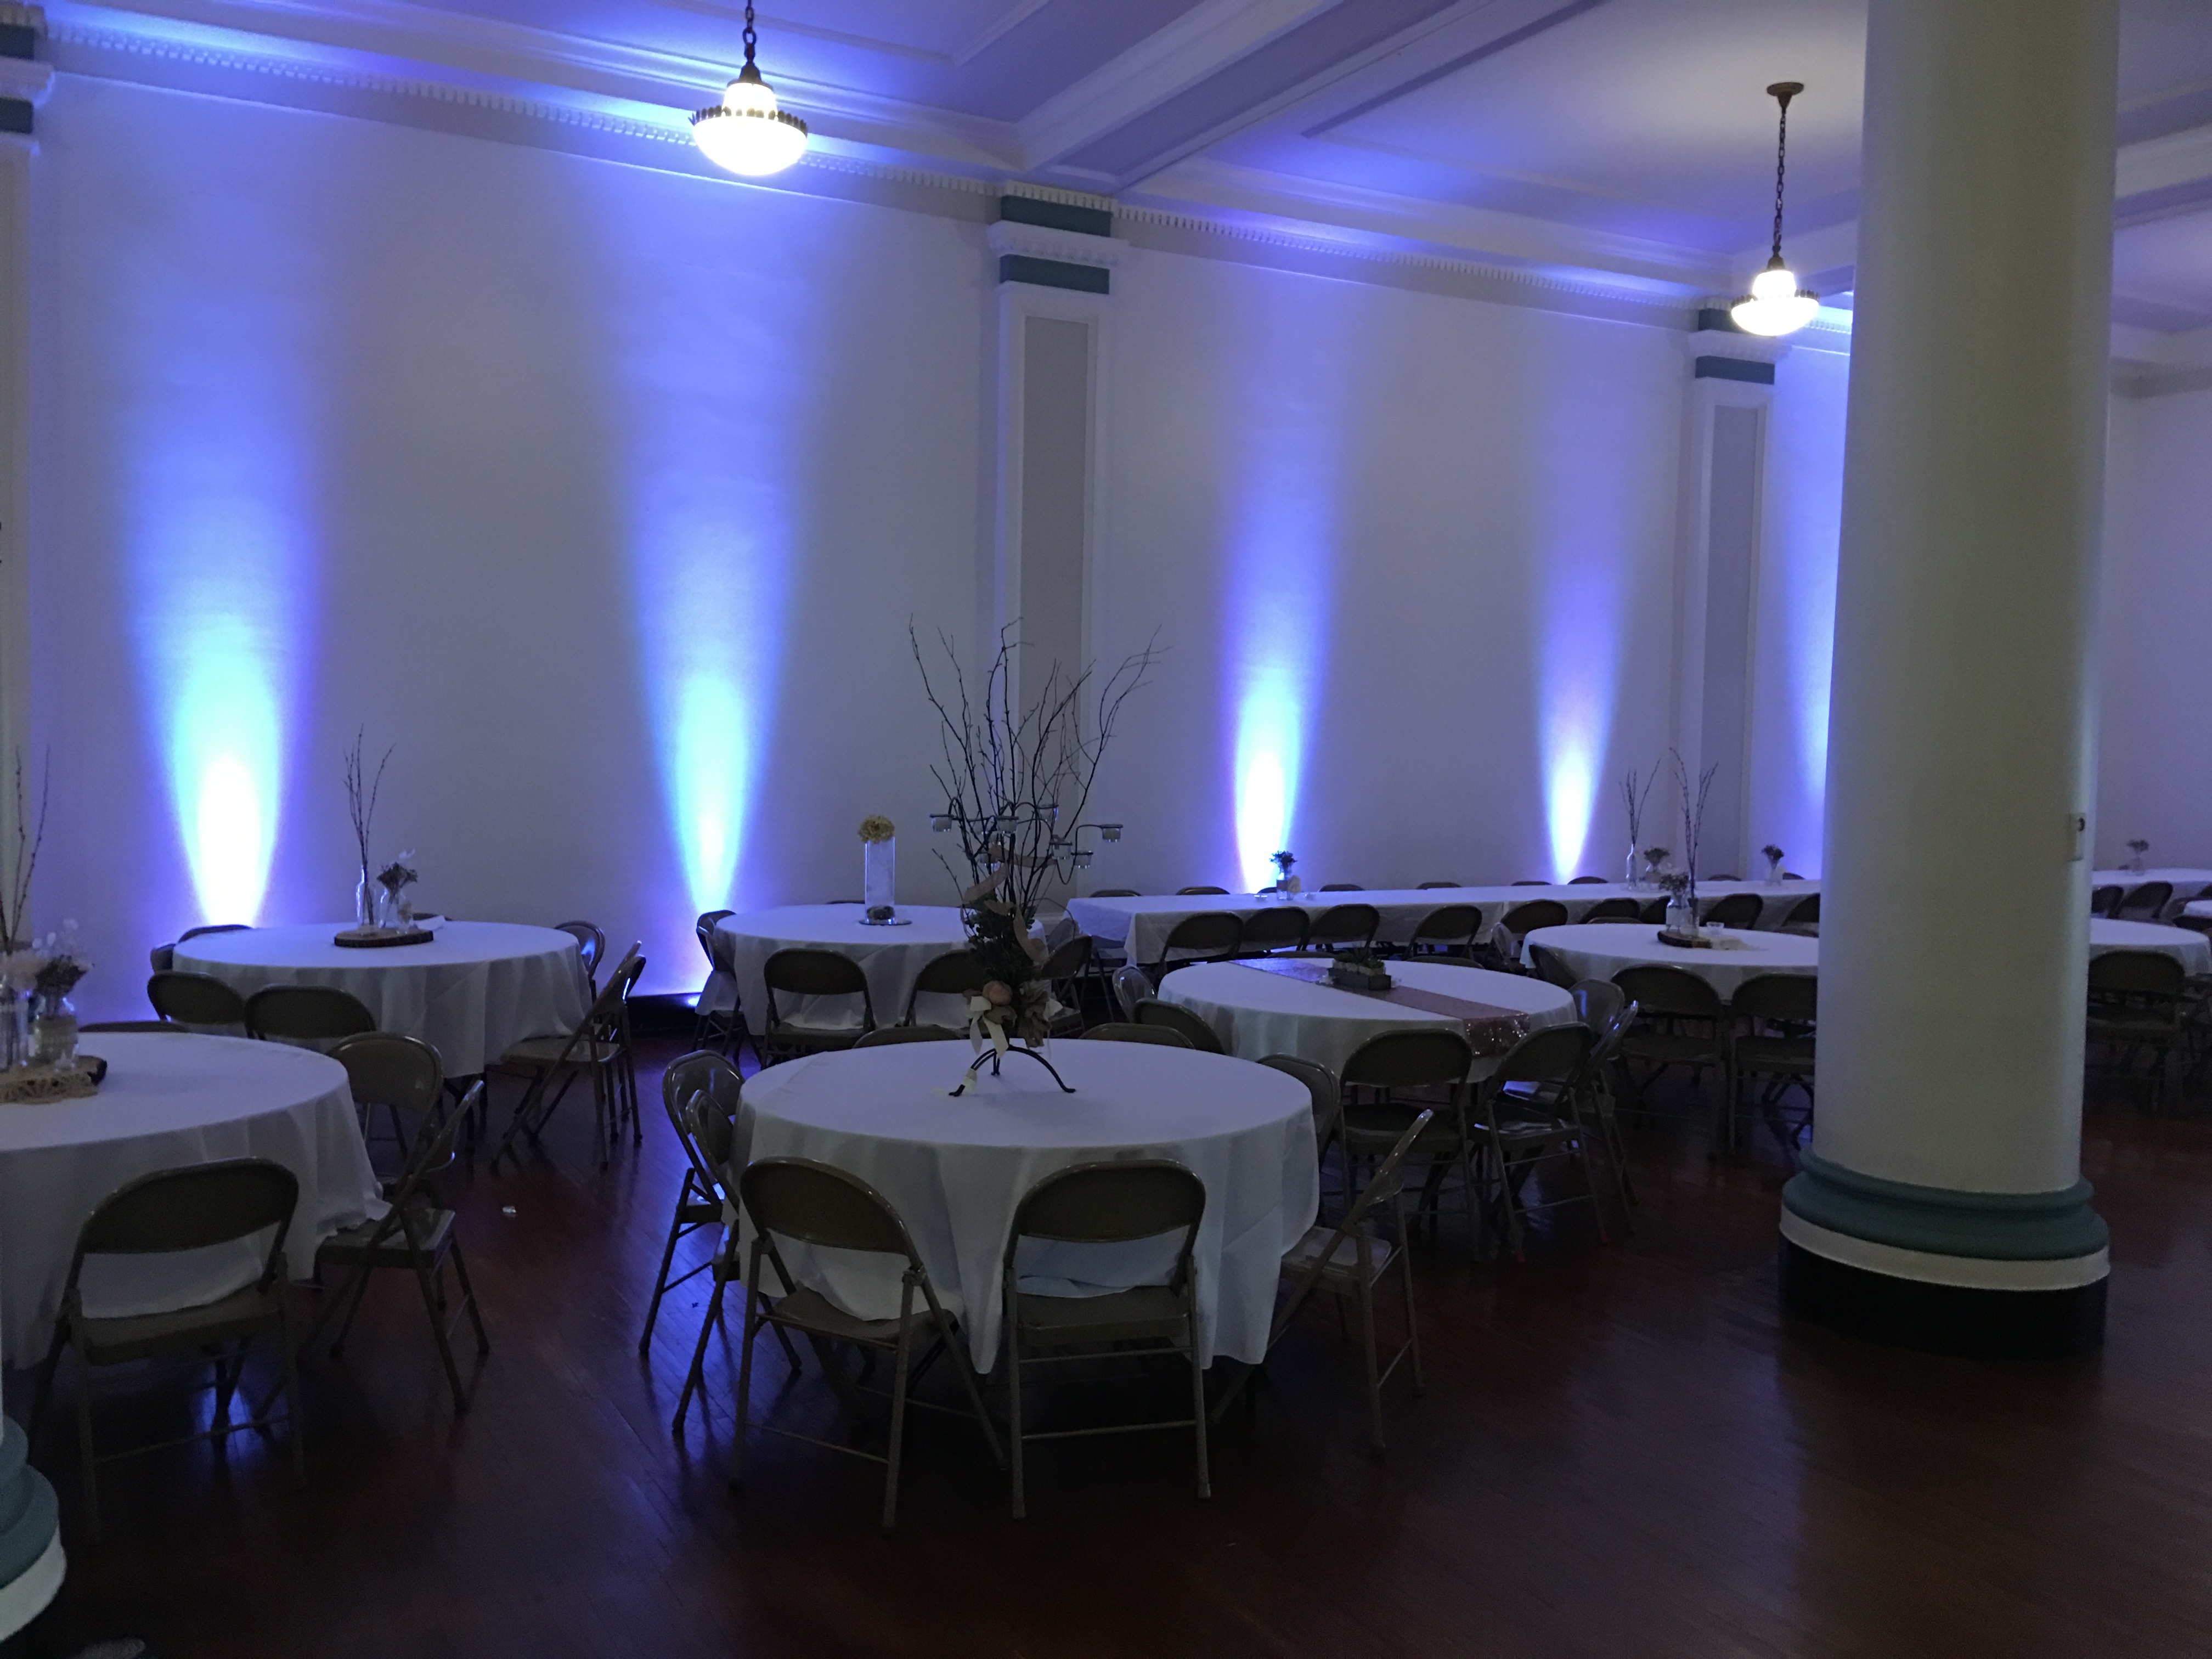 Uplighting rentals available in the colow of led white.